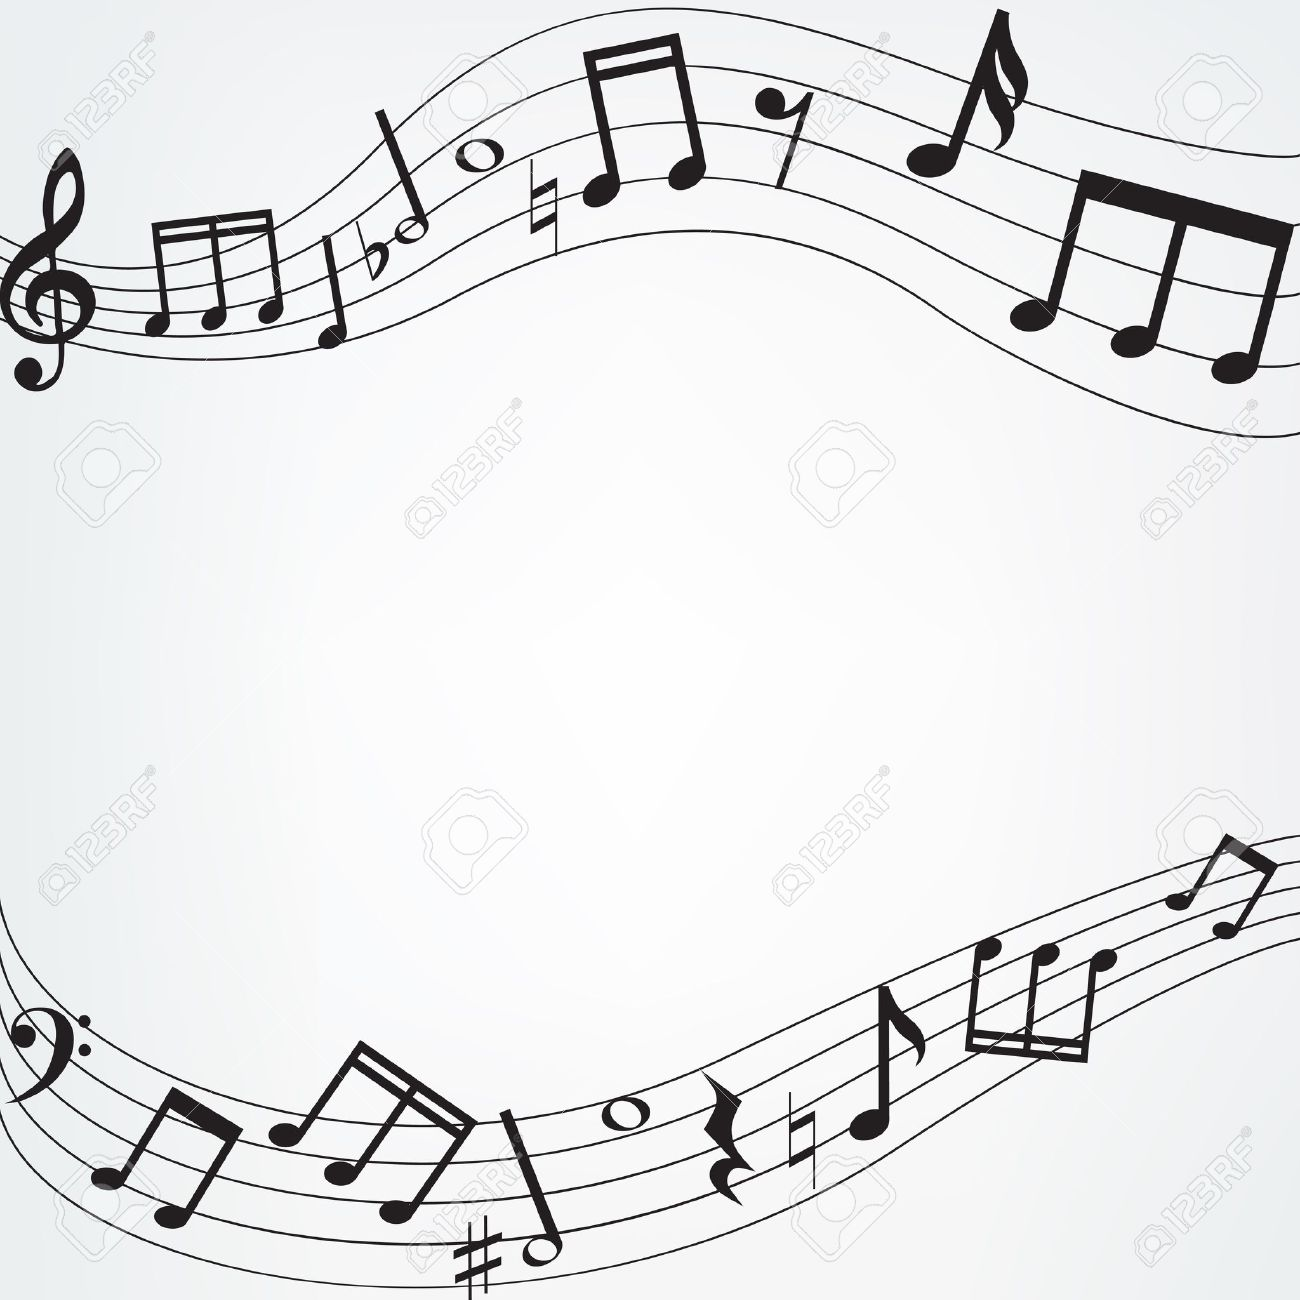 Background With Music Notes Border Royalty Free Cliparts Vectors